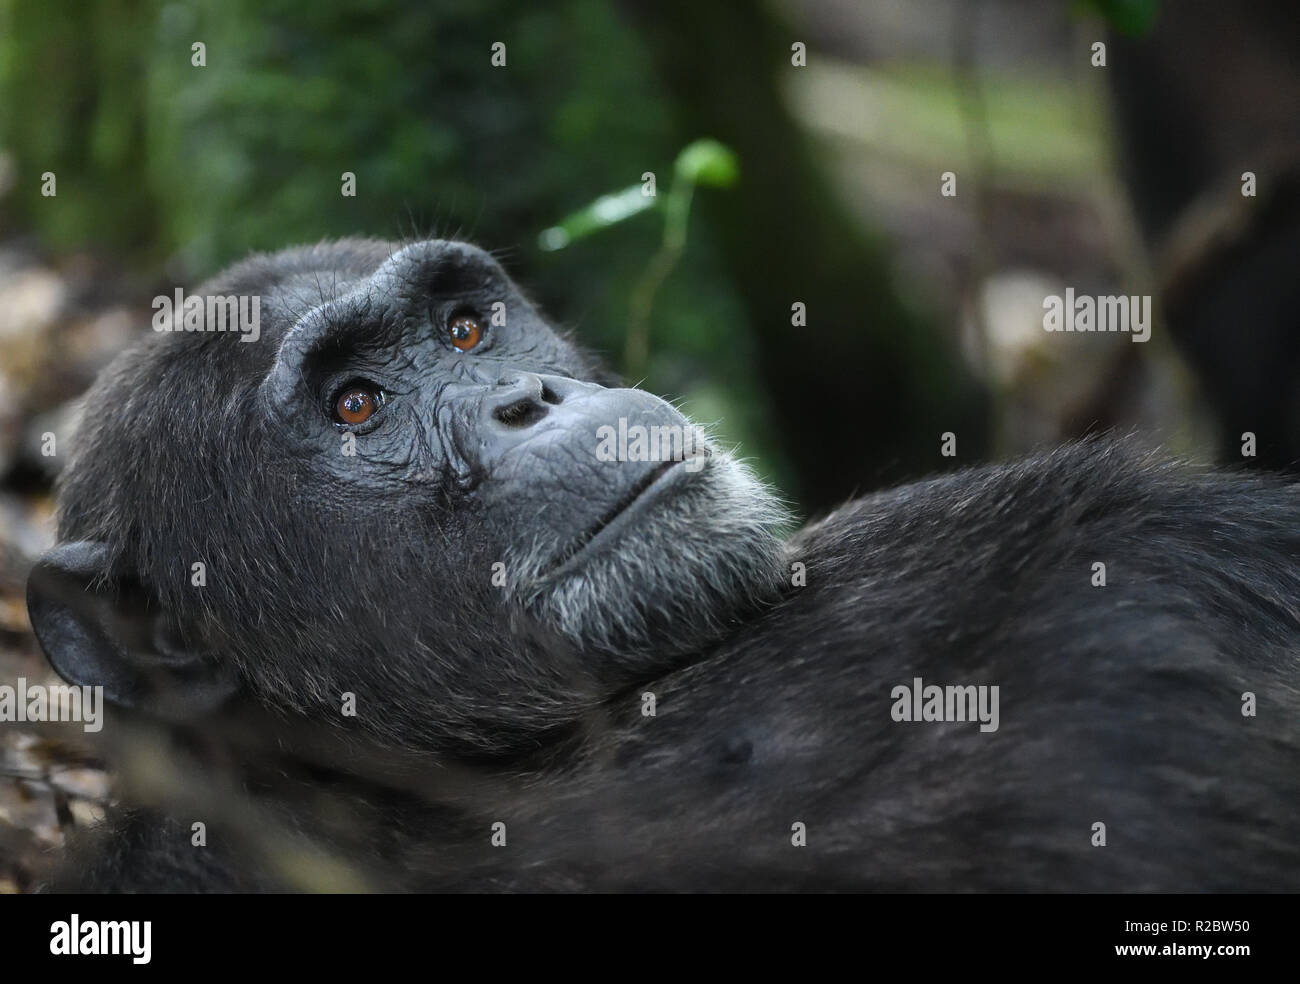 A dominant male Common chimpanzee (Pan troglodytes) relaxes after a morning's foraging.  Kibale Forest National Park, Uganda. - Stock Image